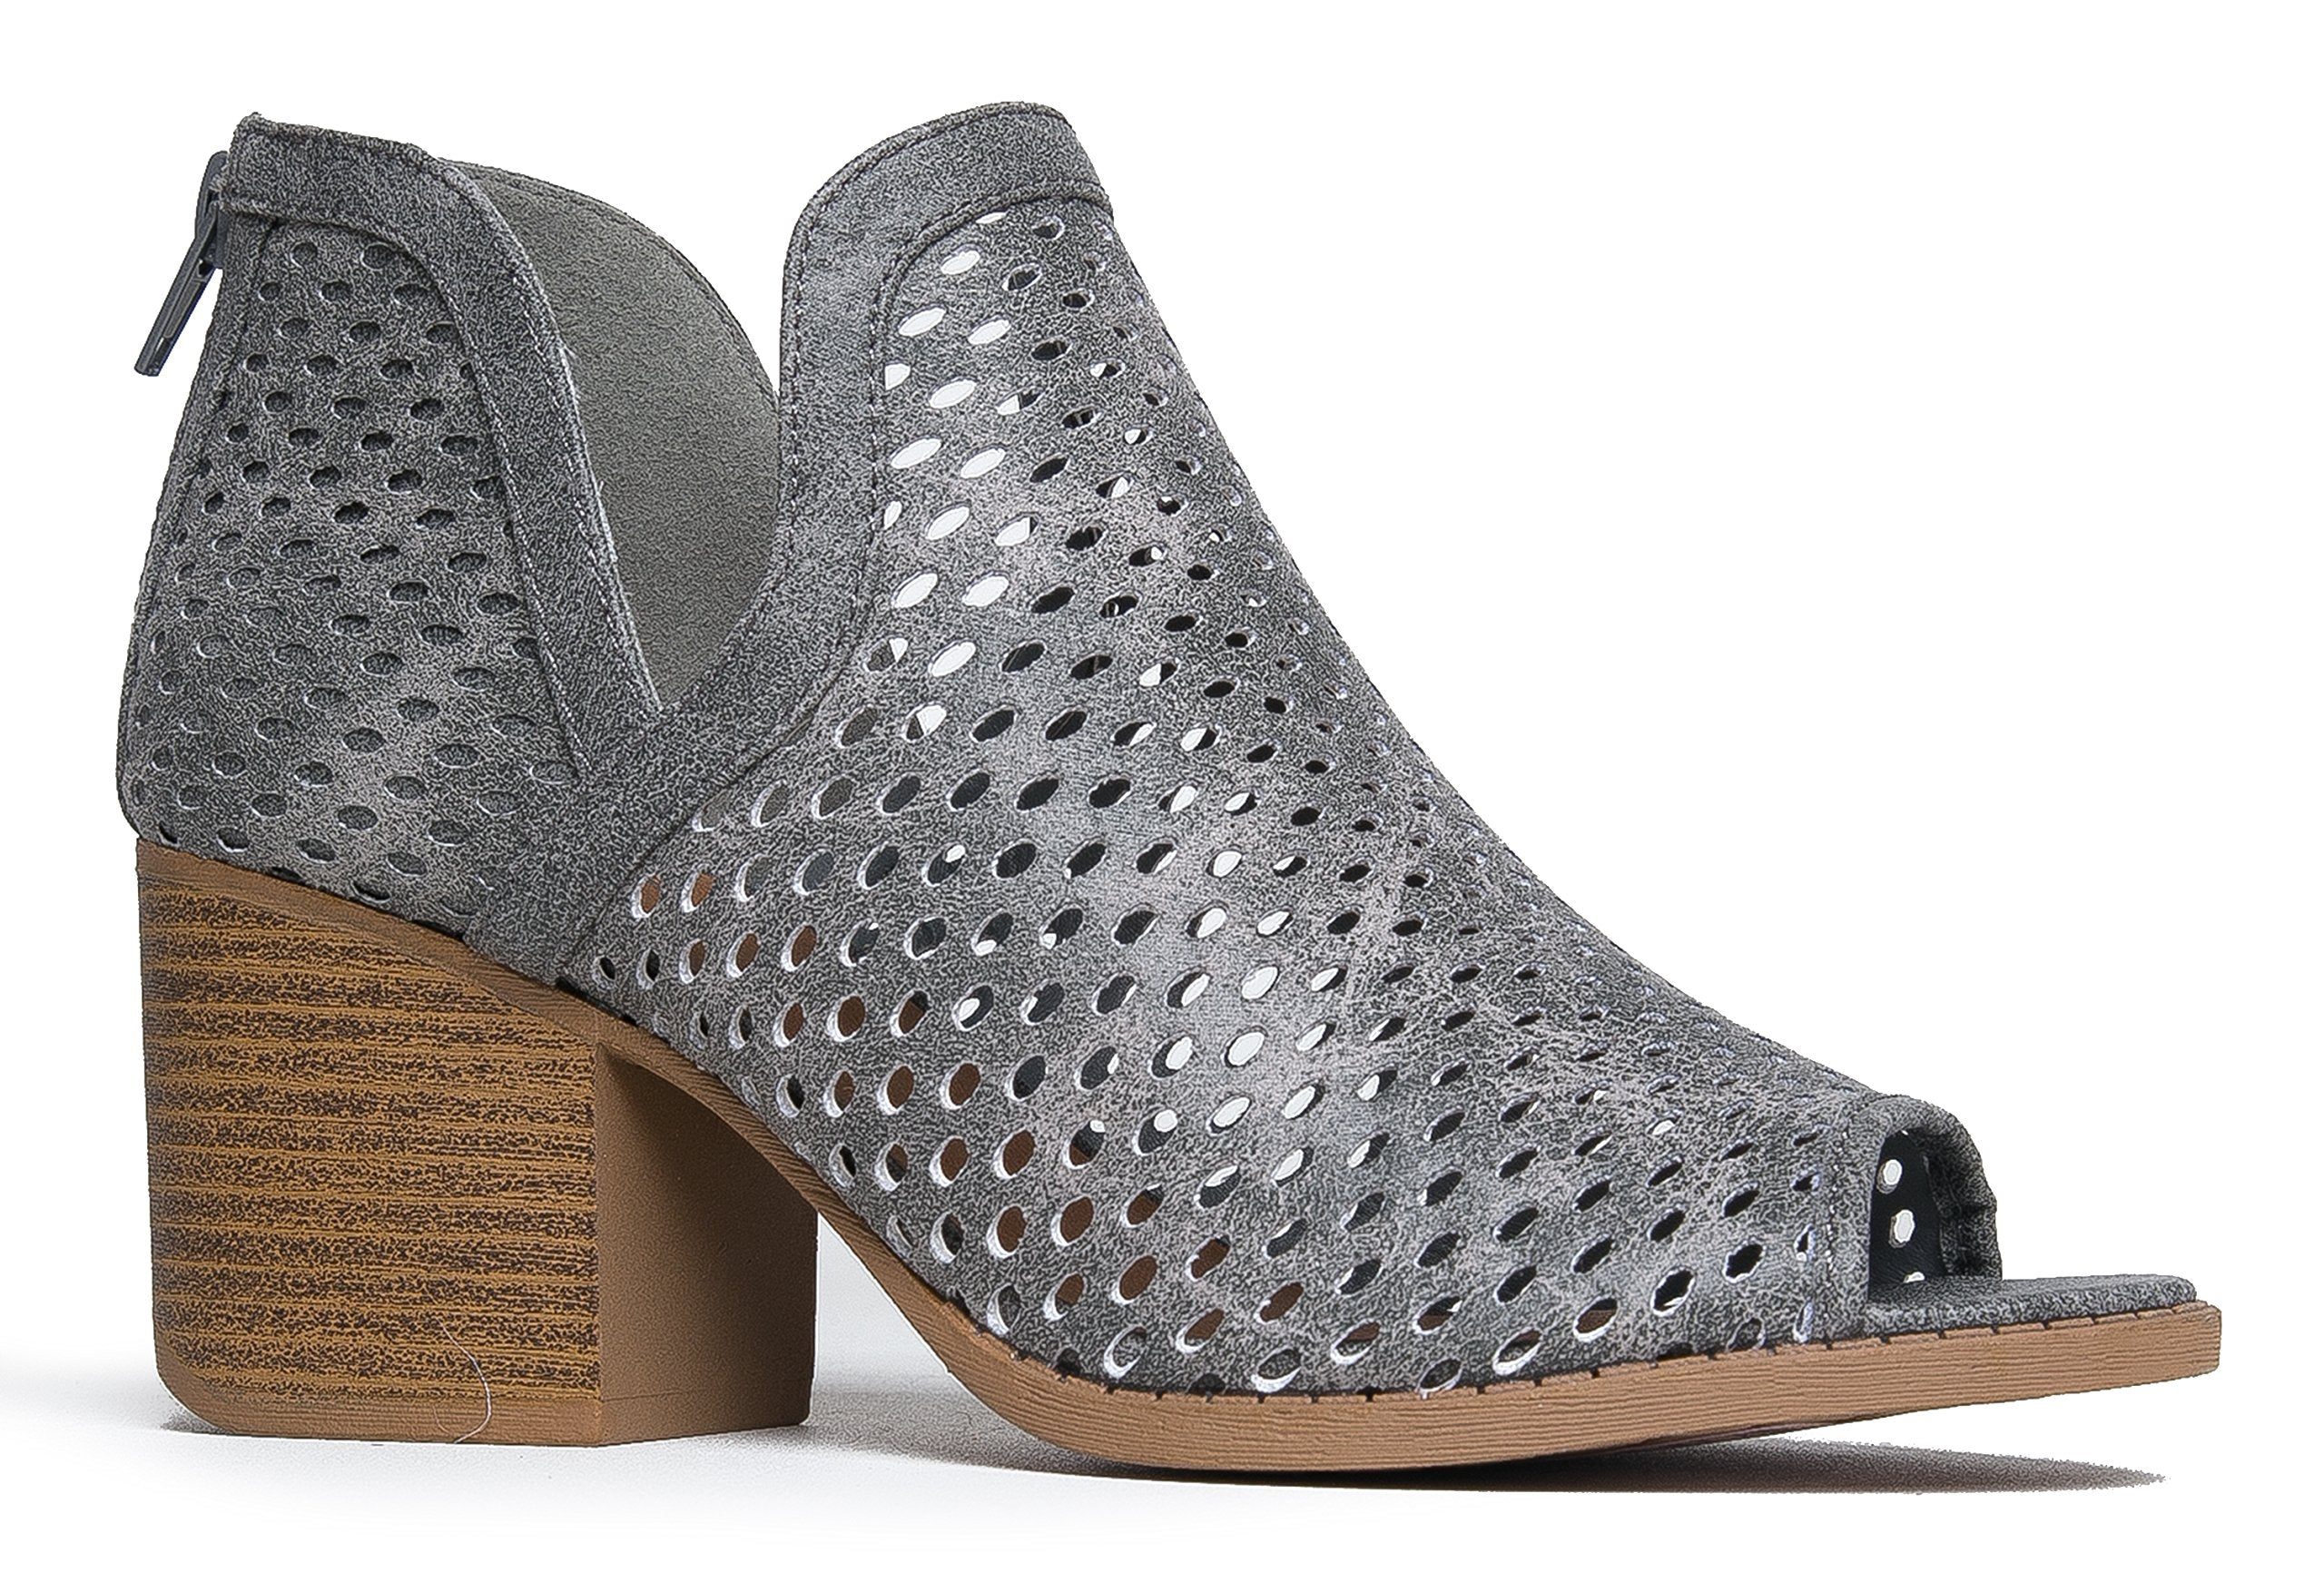 J. Adams Perch Perforated Bootie - Distressed Leather